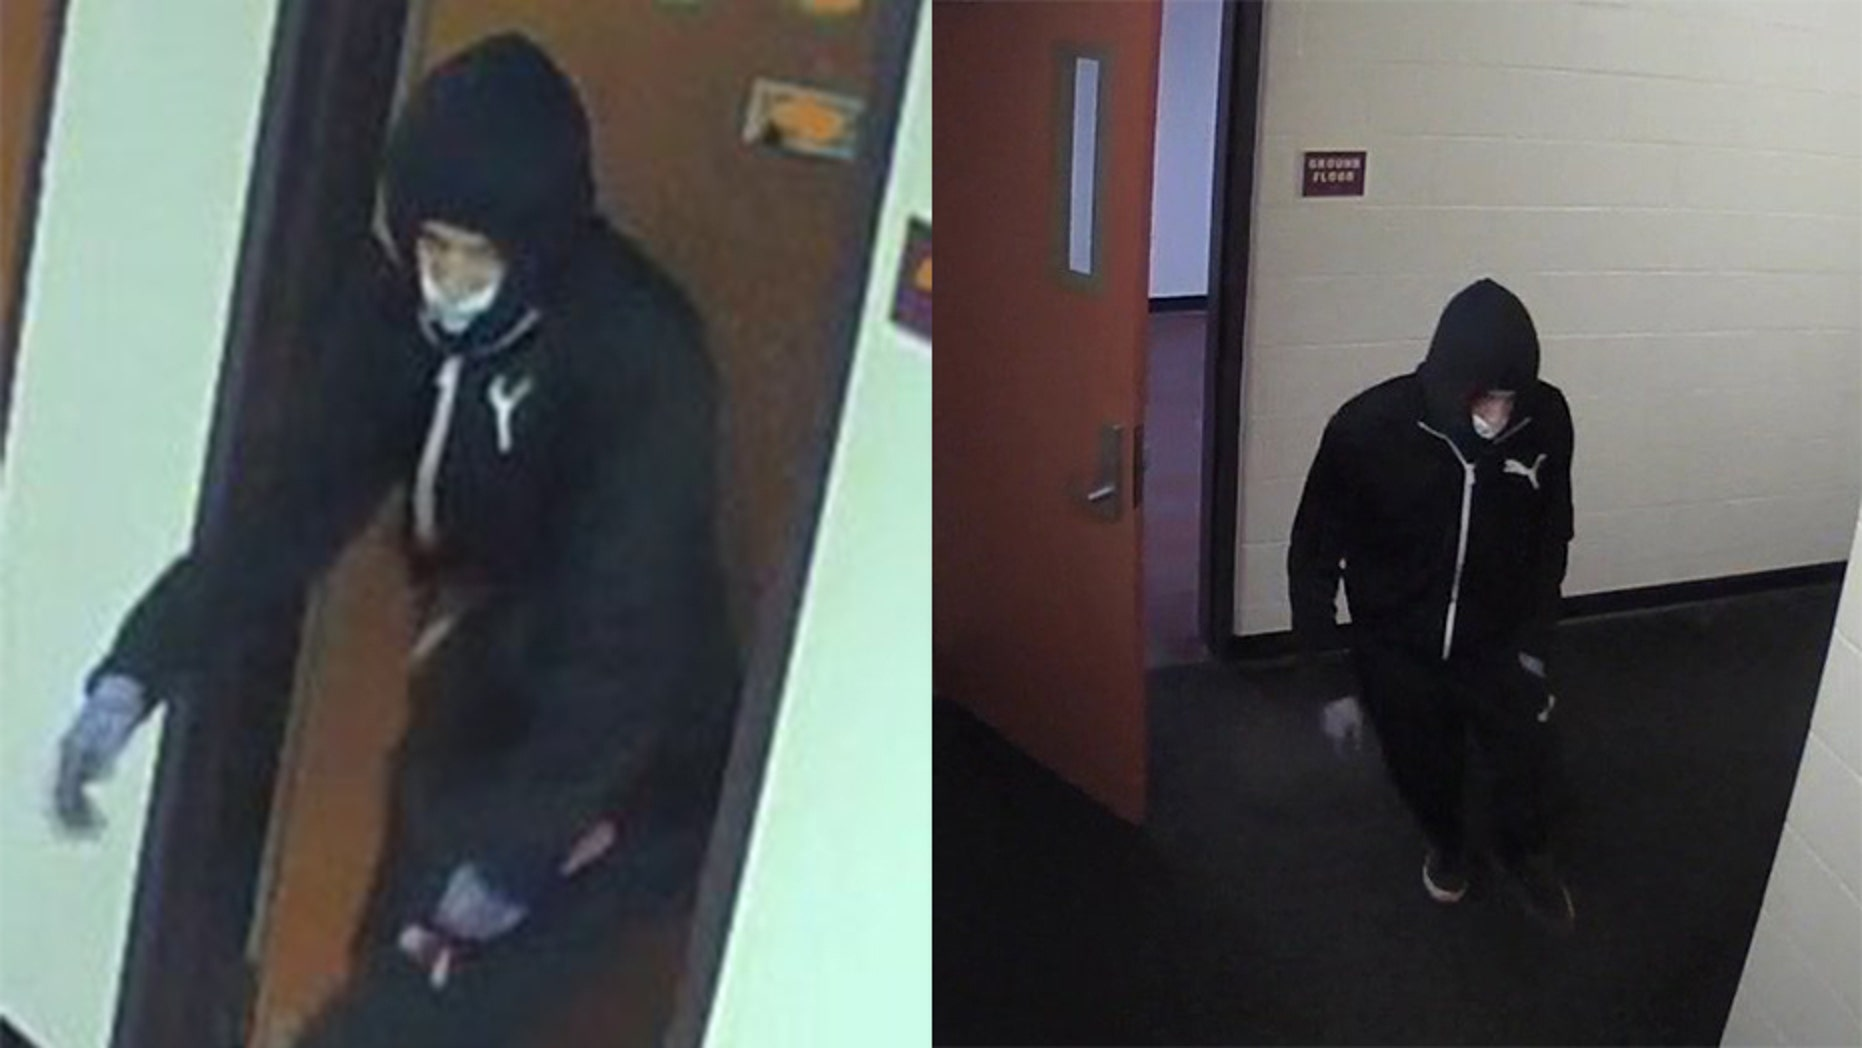 Binghamton University police released images of a suspect in the deadly stabbing of a 19-year-old student in a campus dorm room Sunday.